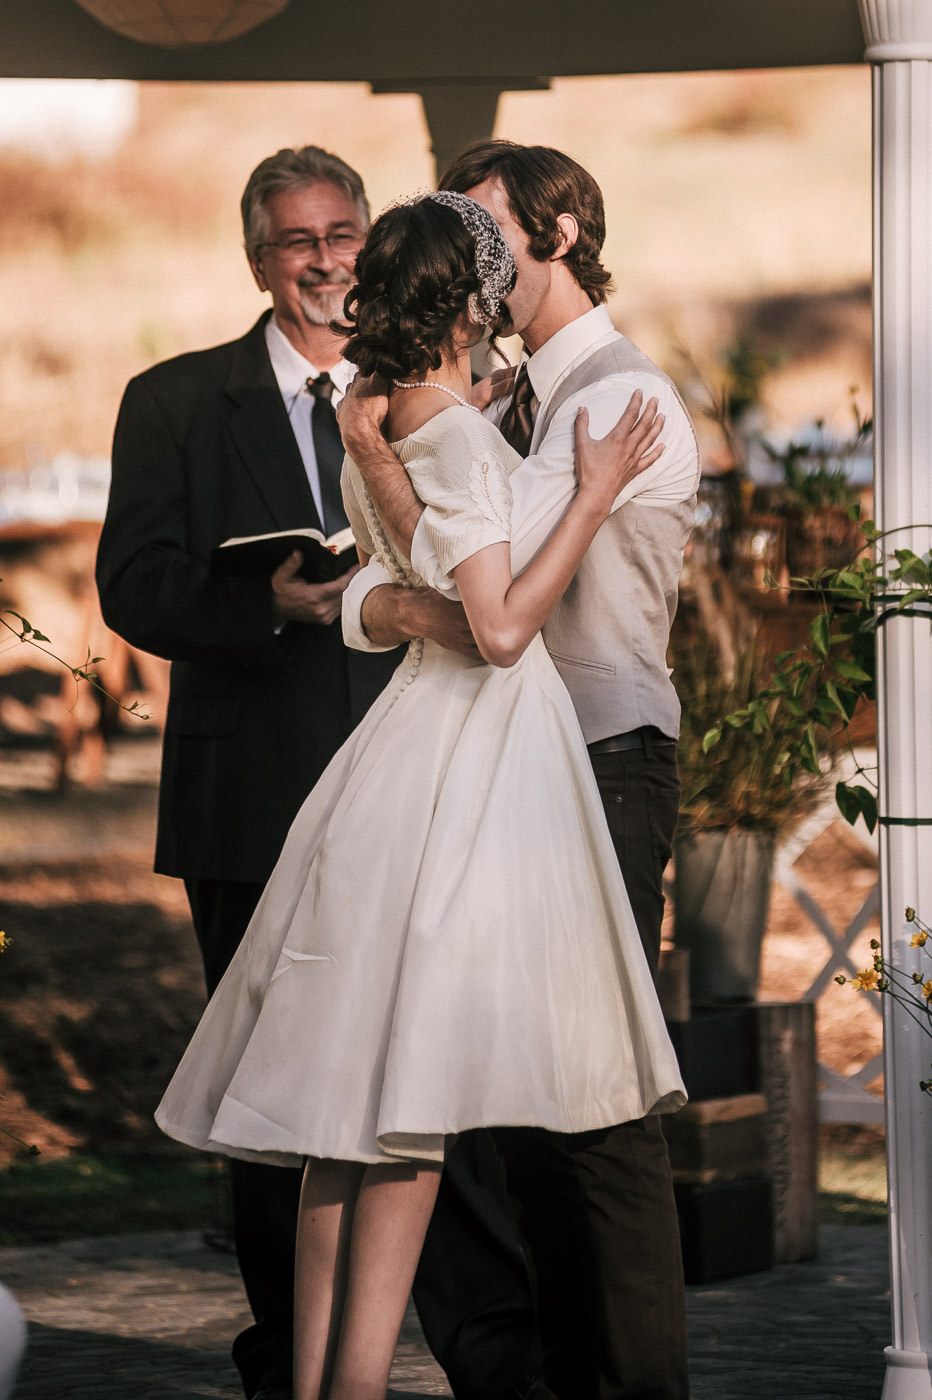 Bride and groom share a romantic kiss for the first time at their temecula wine country wedding